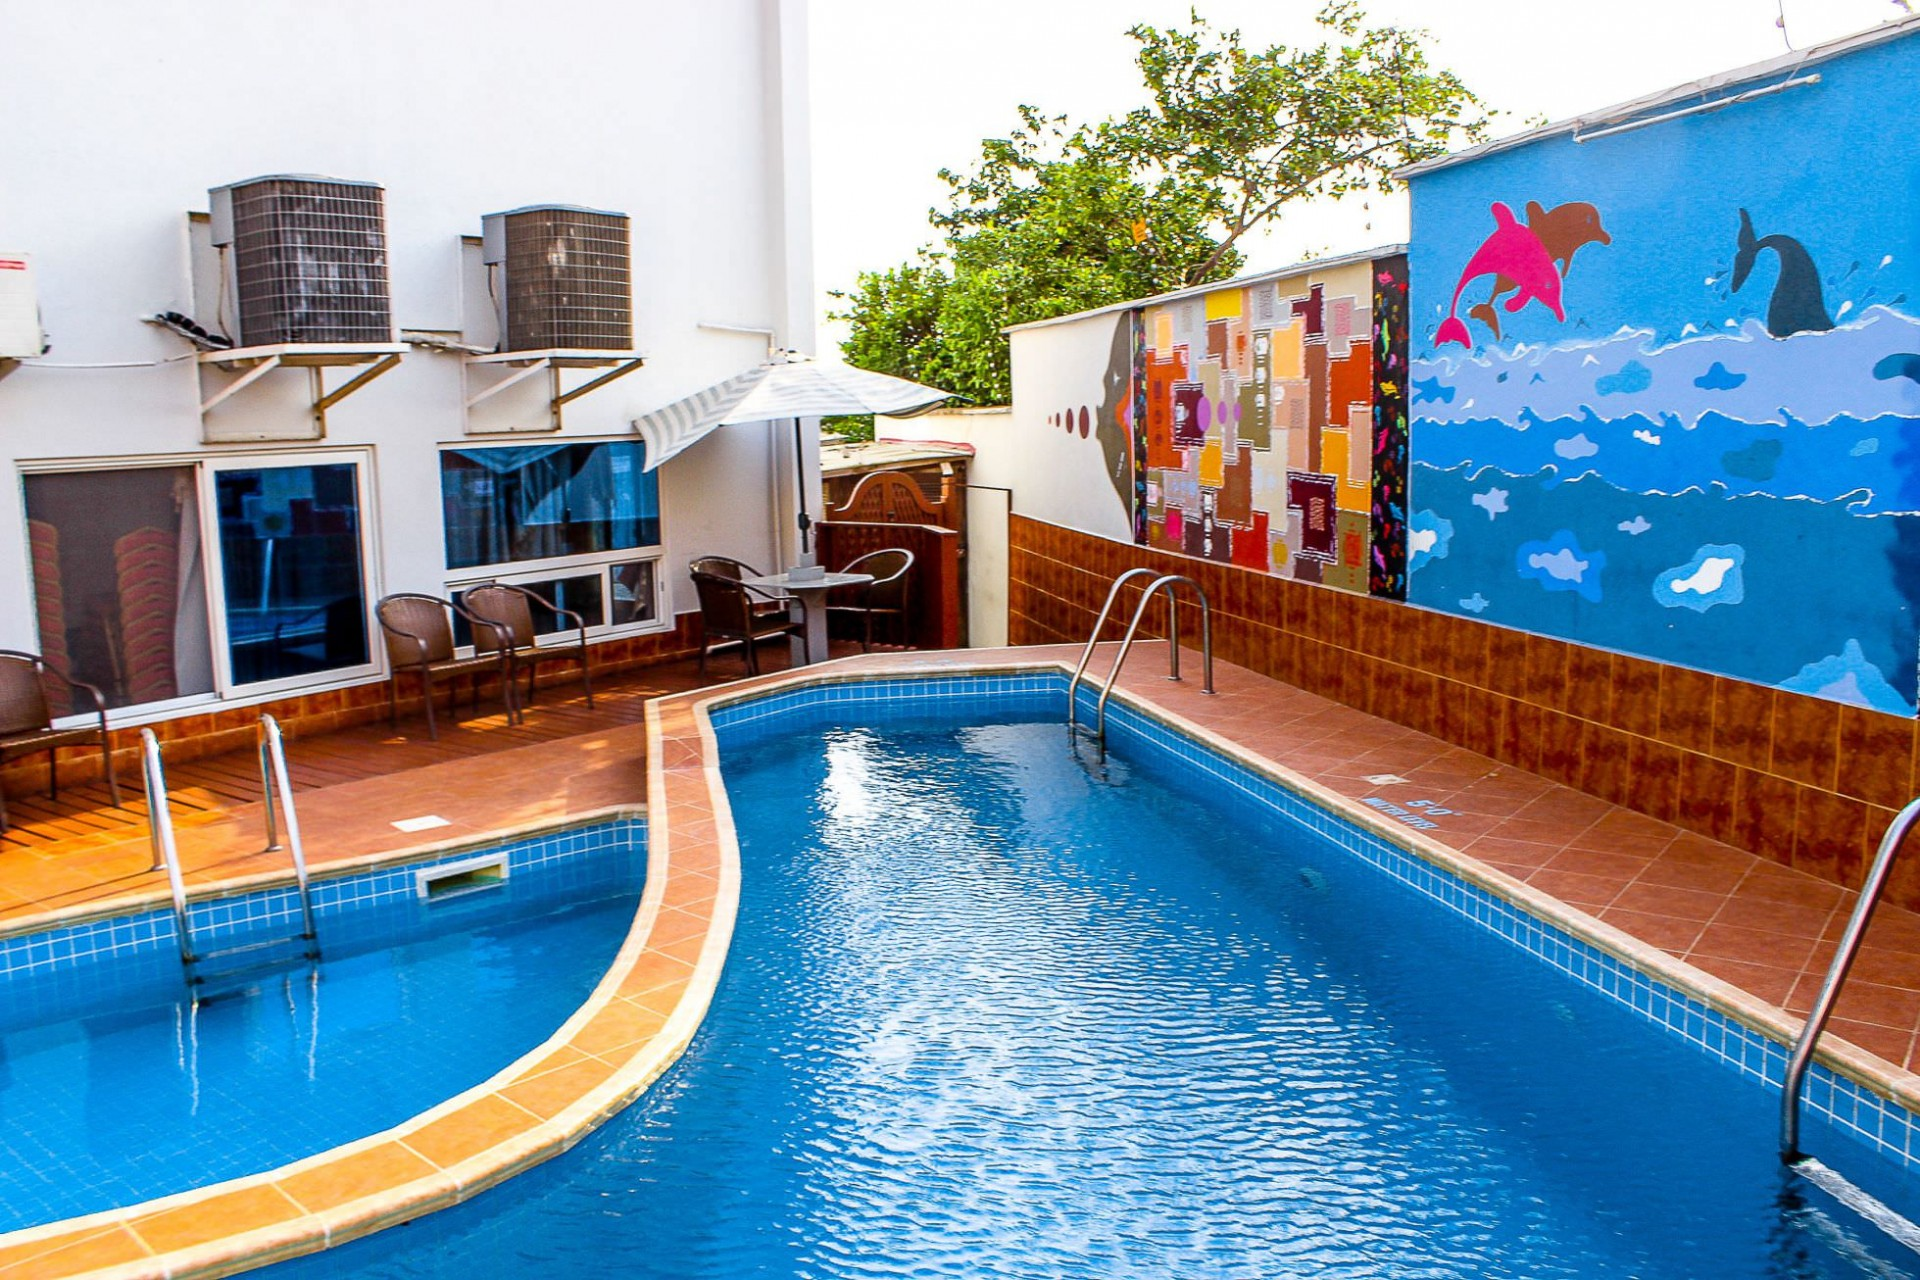 Maxlot Hotel Accra-Pool View